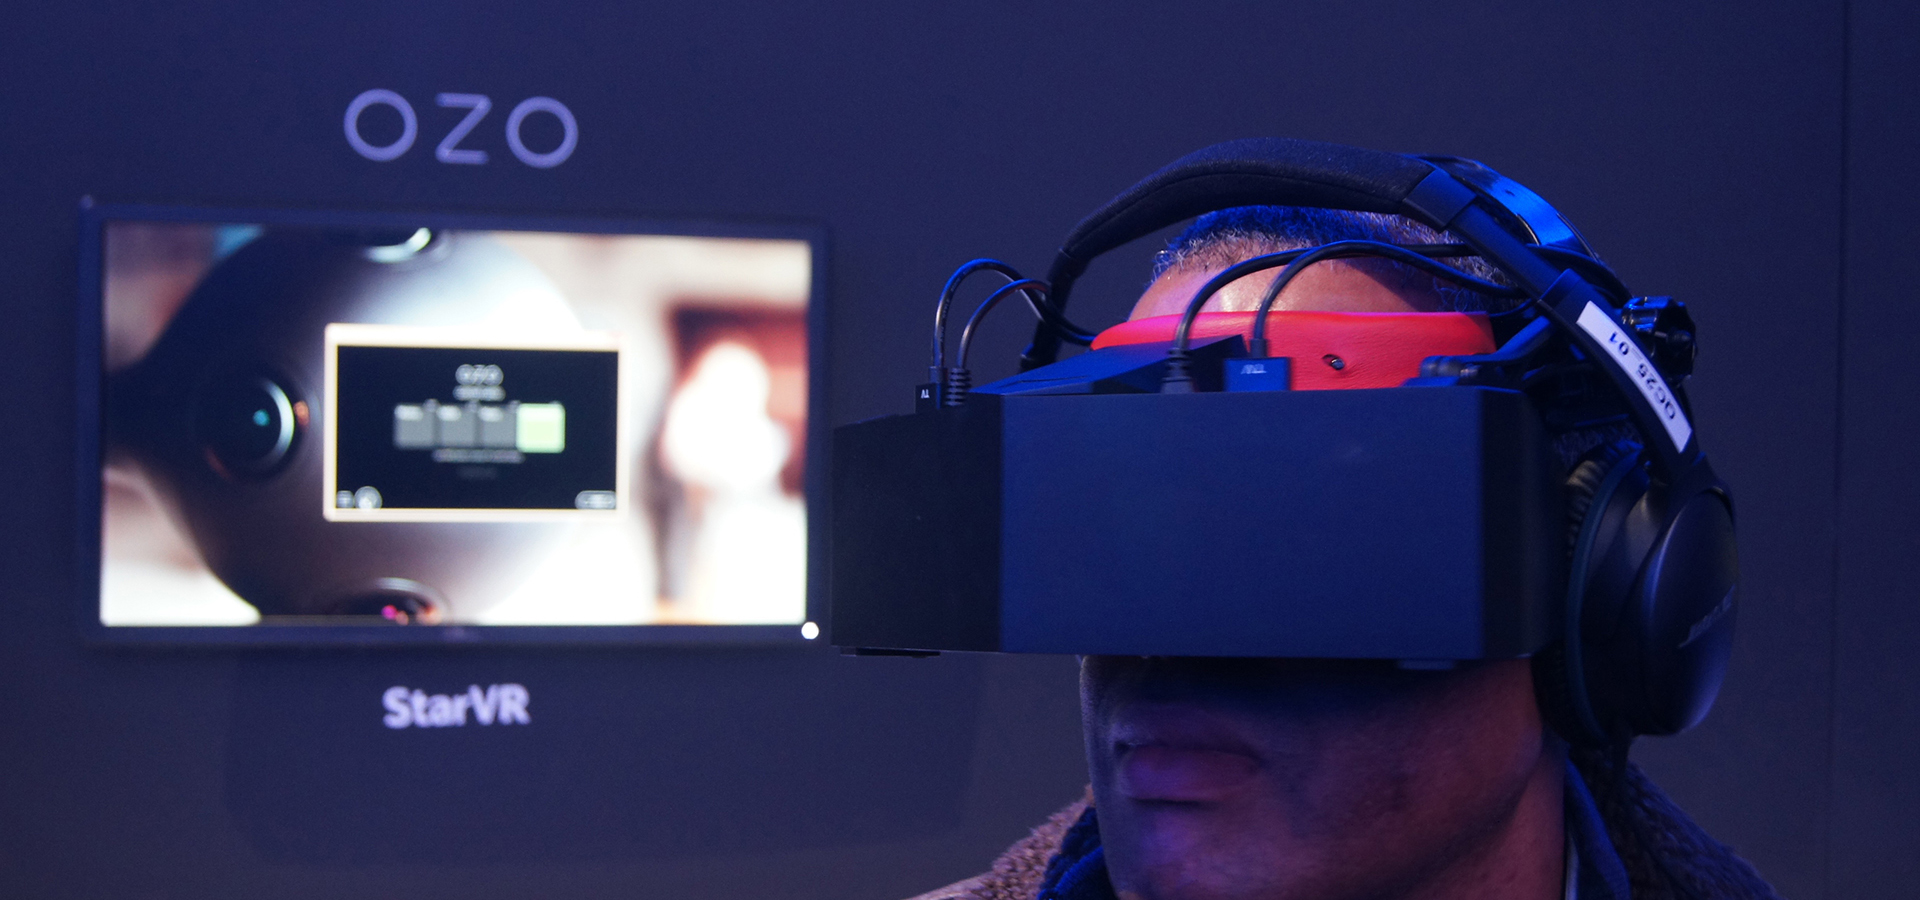 StarVR Supported Nokia's MAKING VIRTUAL REALITY OZO Launch Event